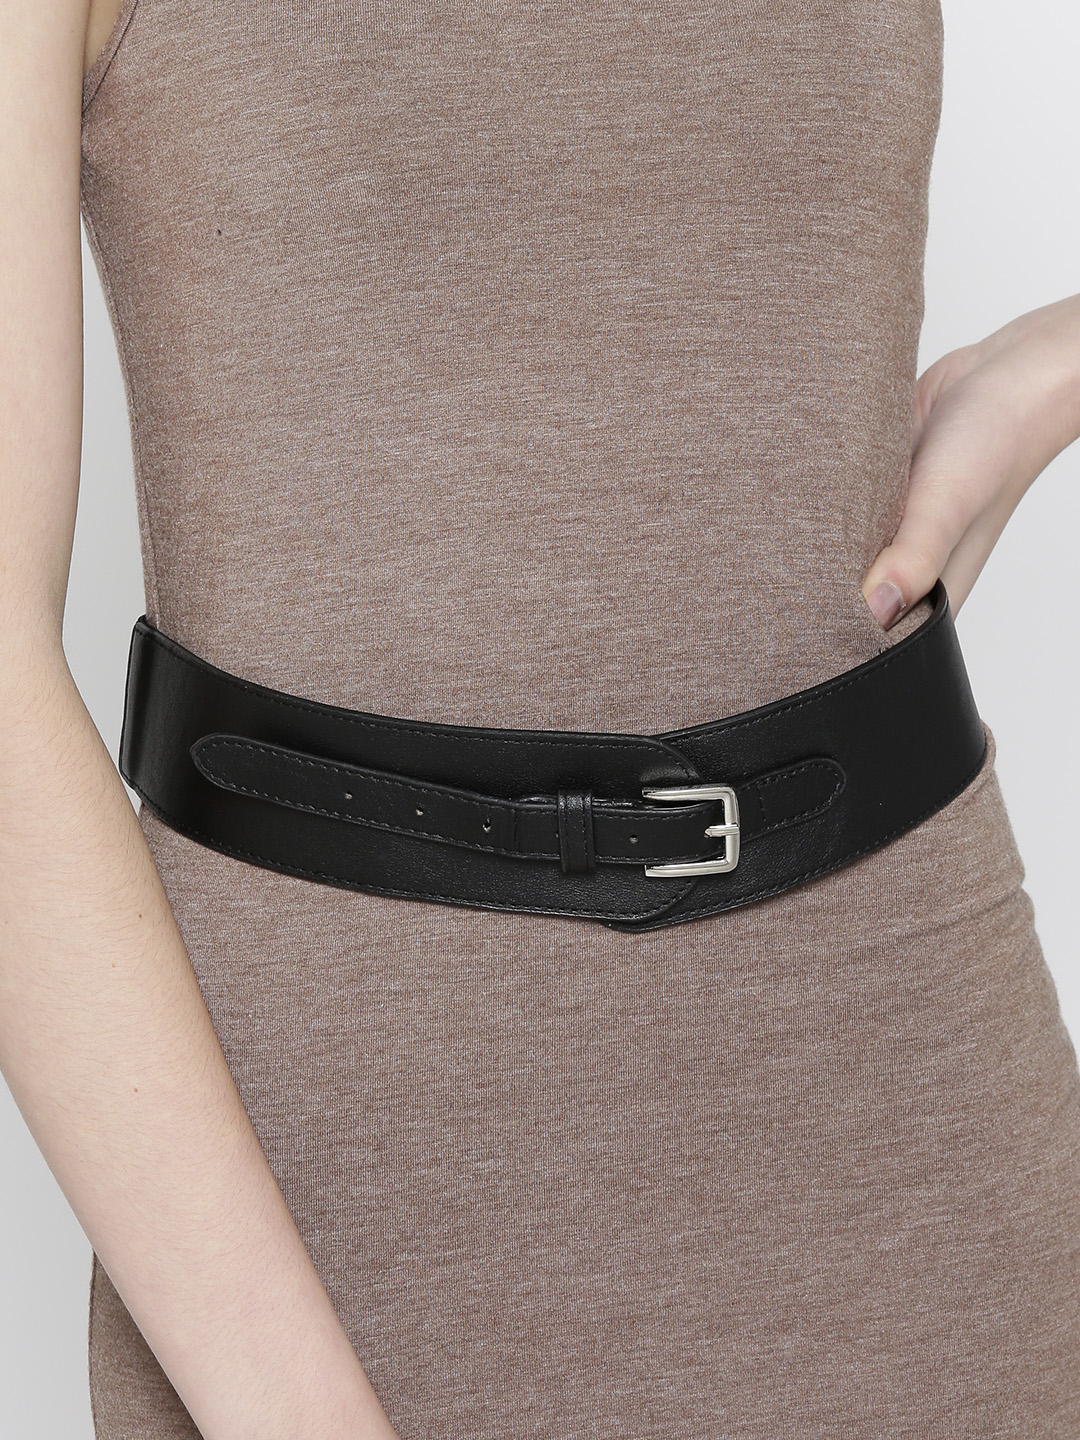 Belts-The Sassy Stride Black Waist Belt1